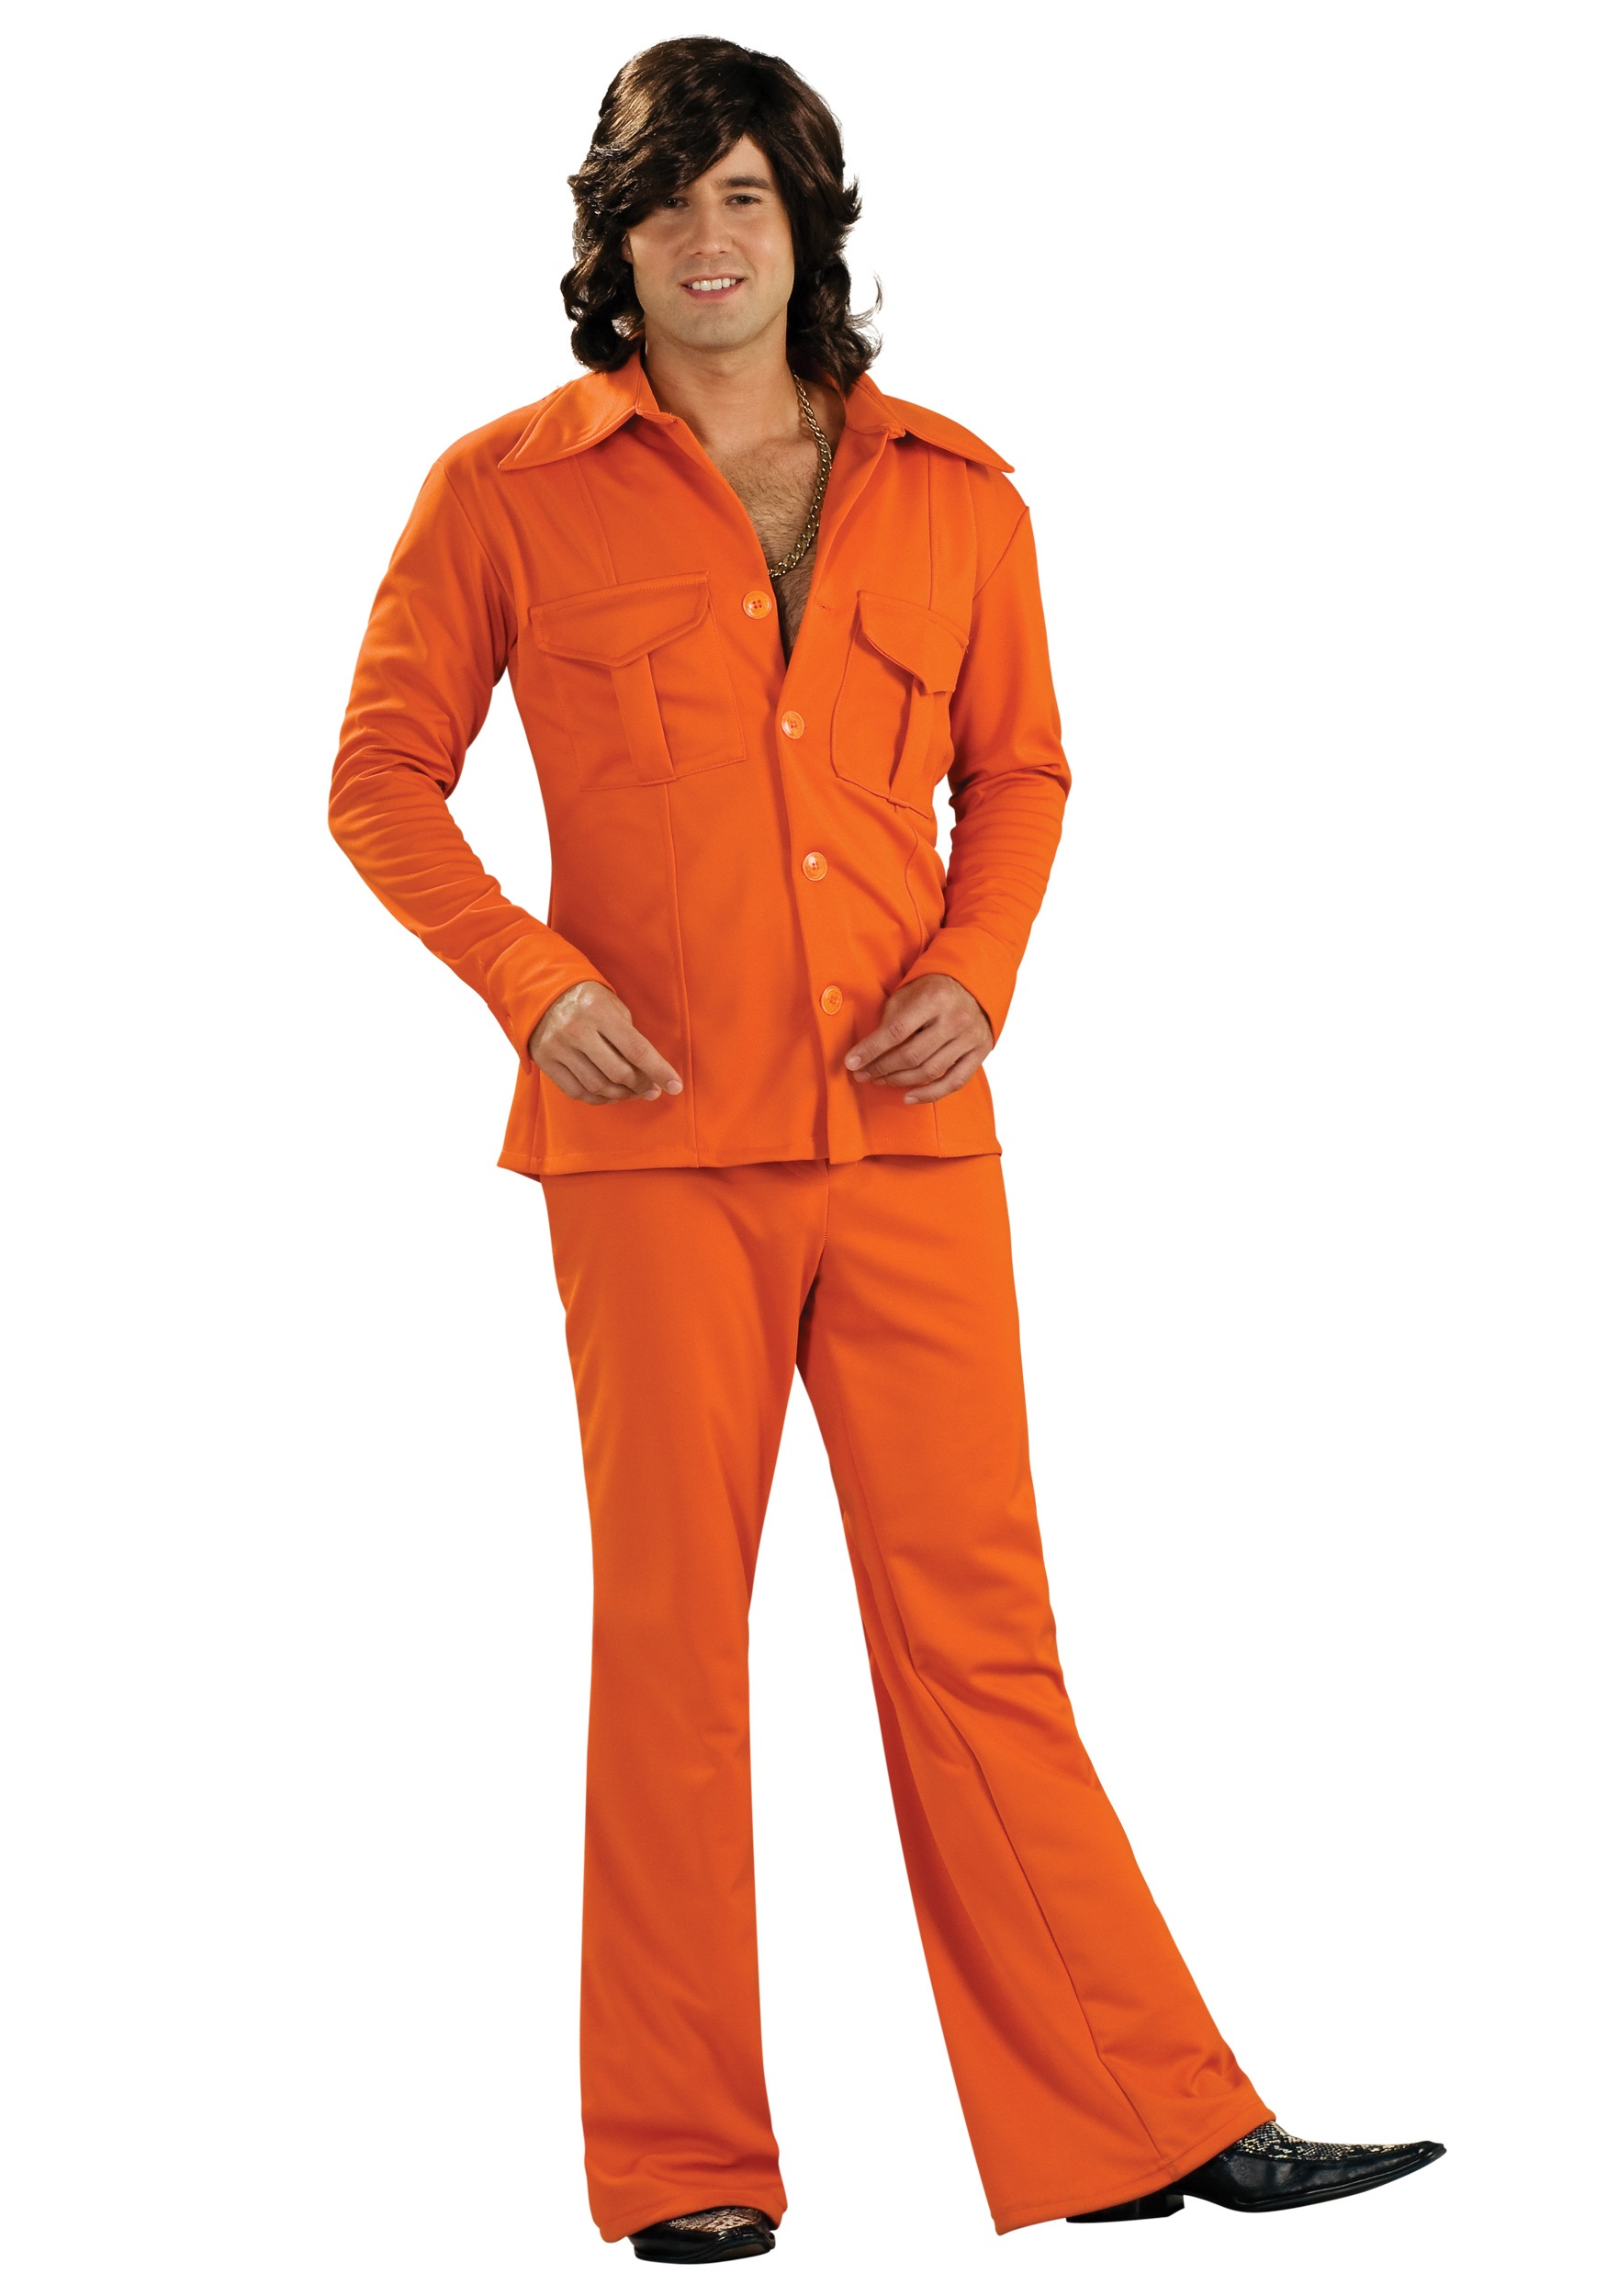 70s Style Orange Leisure Suit  Mens 70s Suits and Disco Costumes